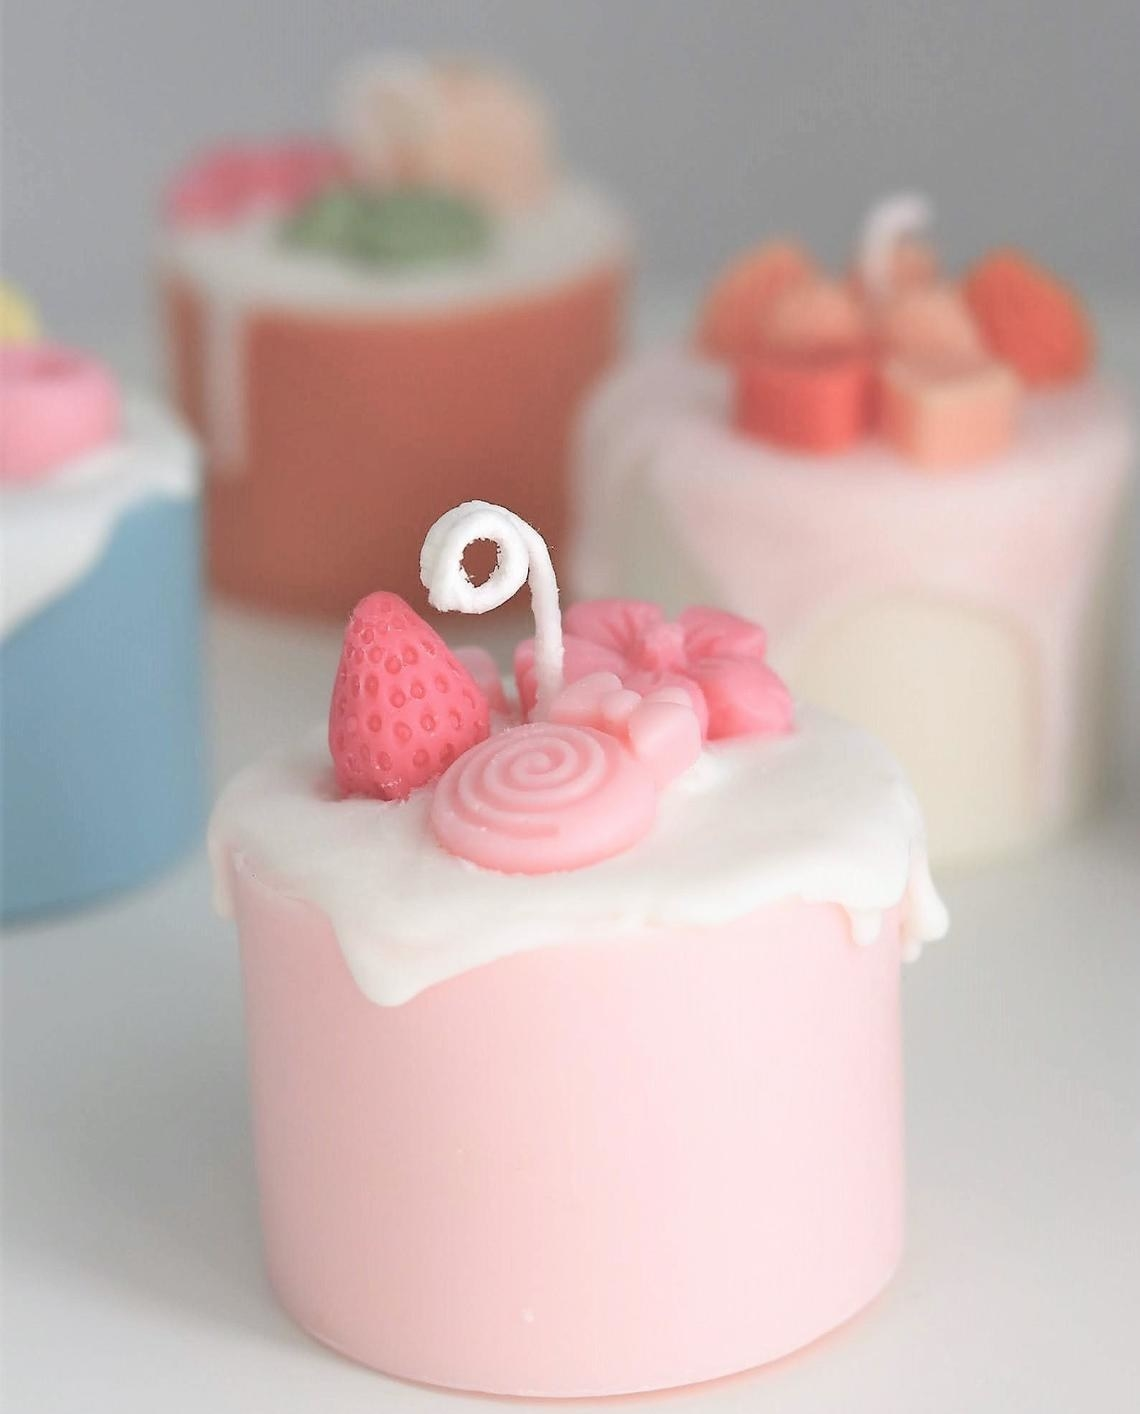 A small candle in the shape of a cake